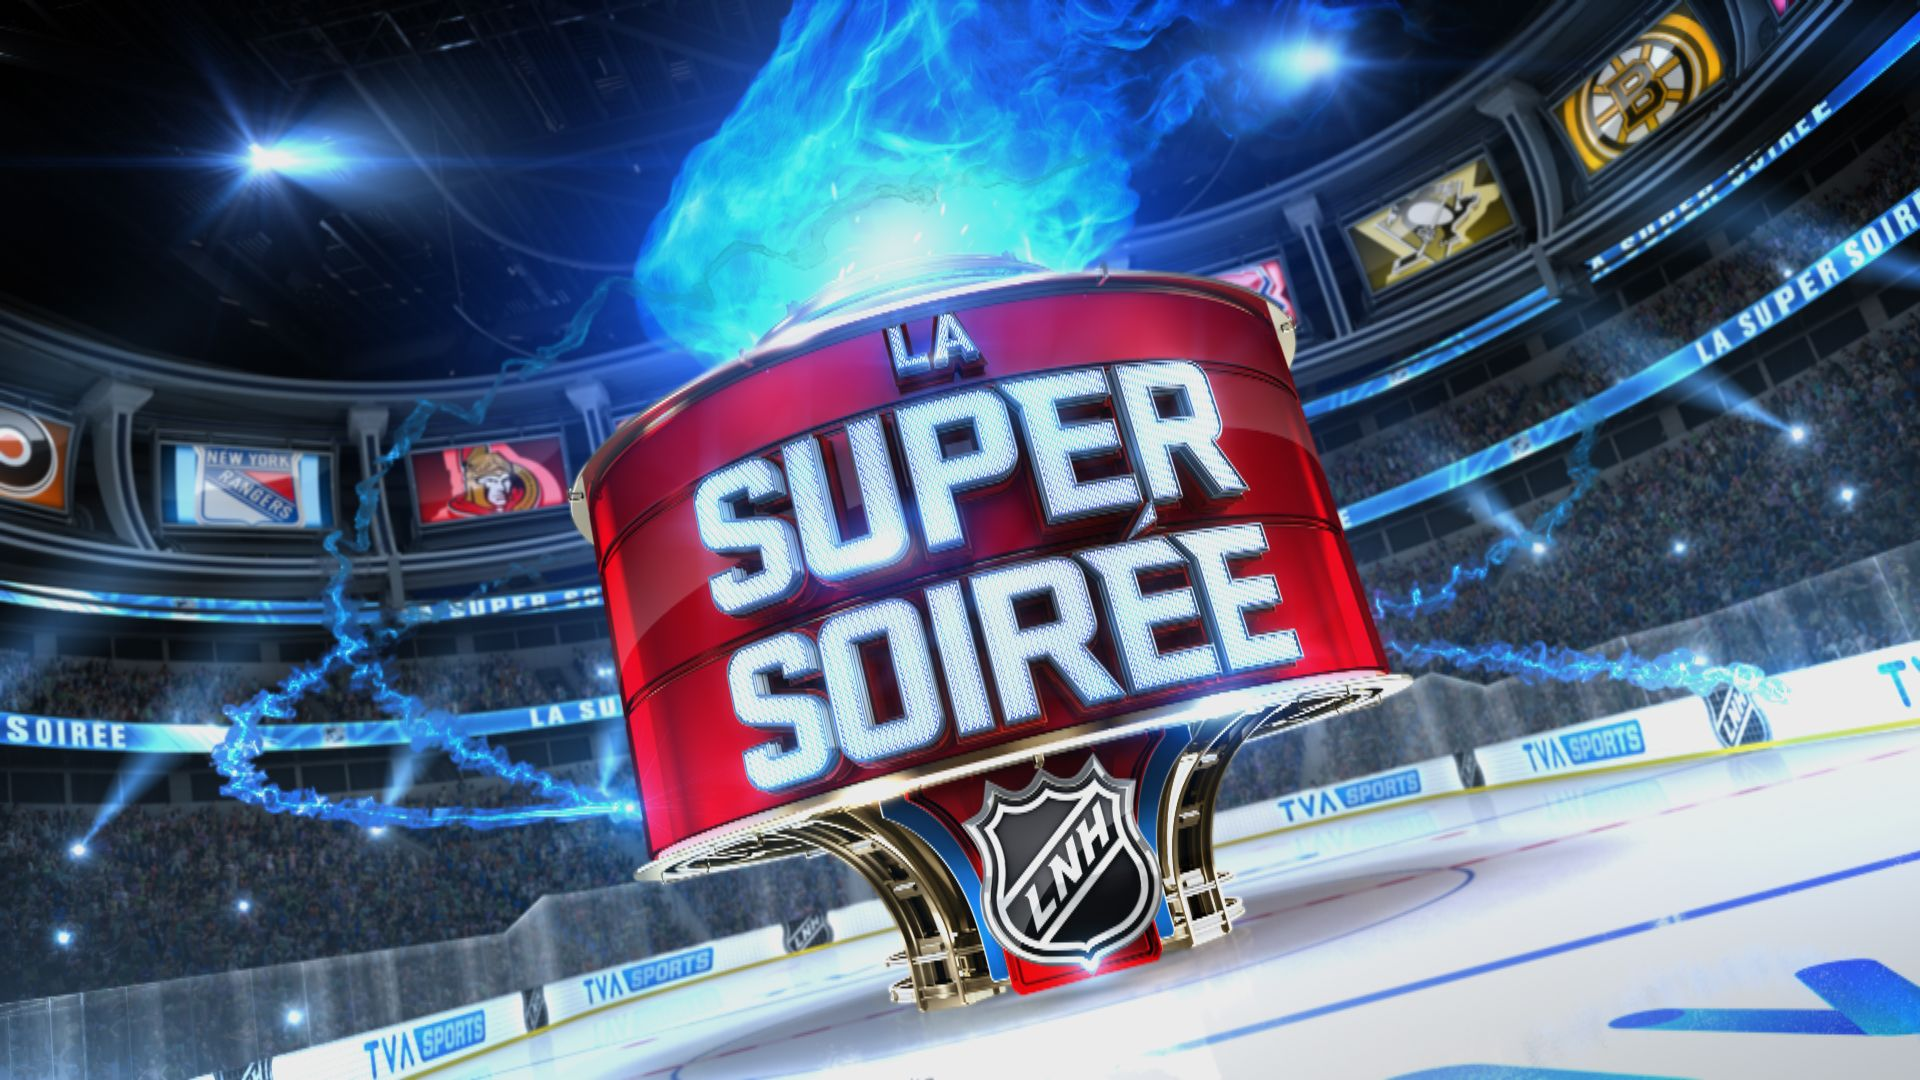 Reality Check Systems » La Super Soiree / TVA Sports